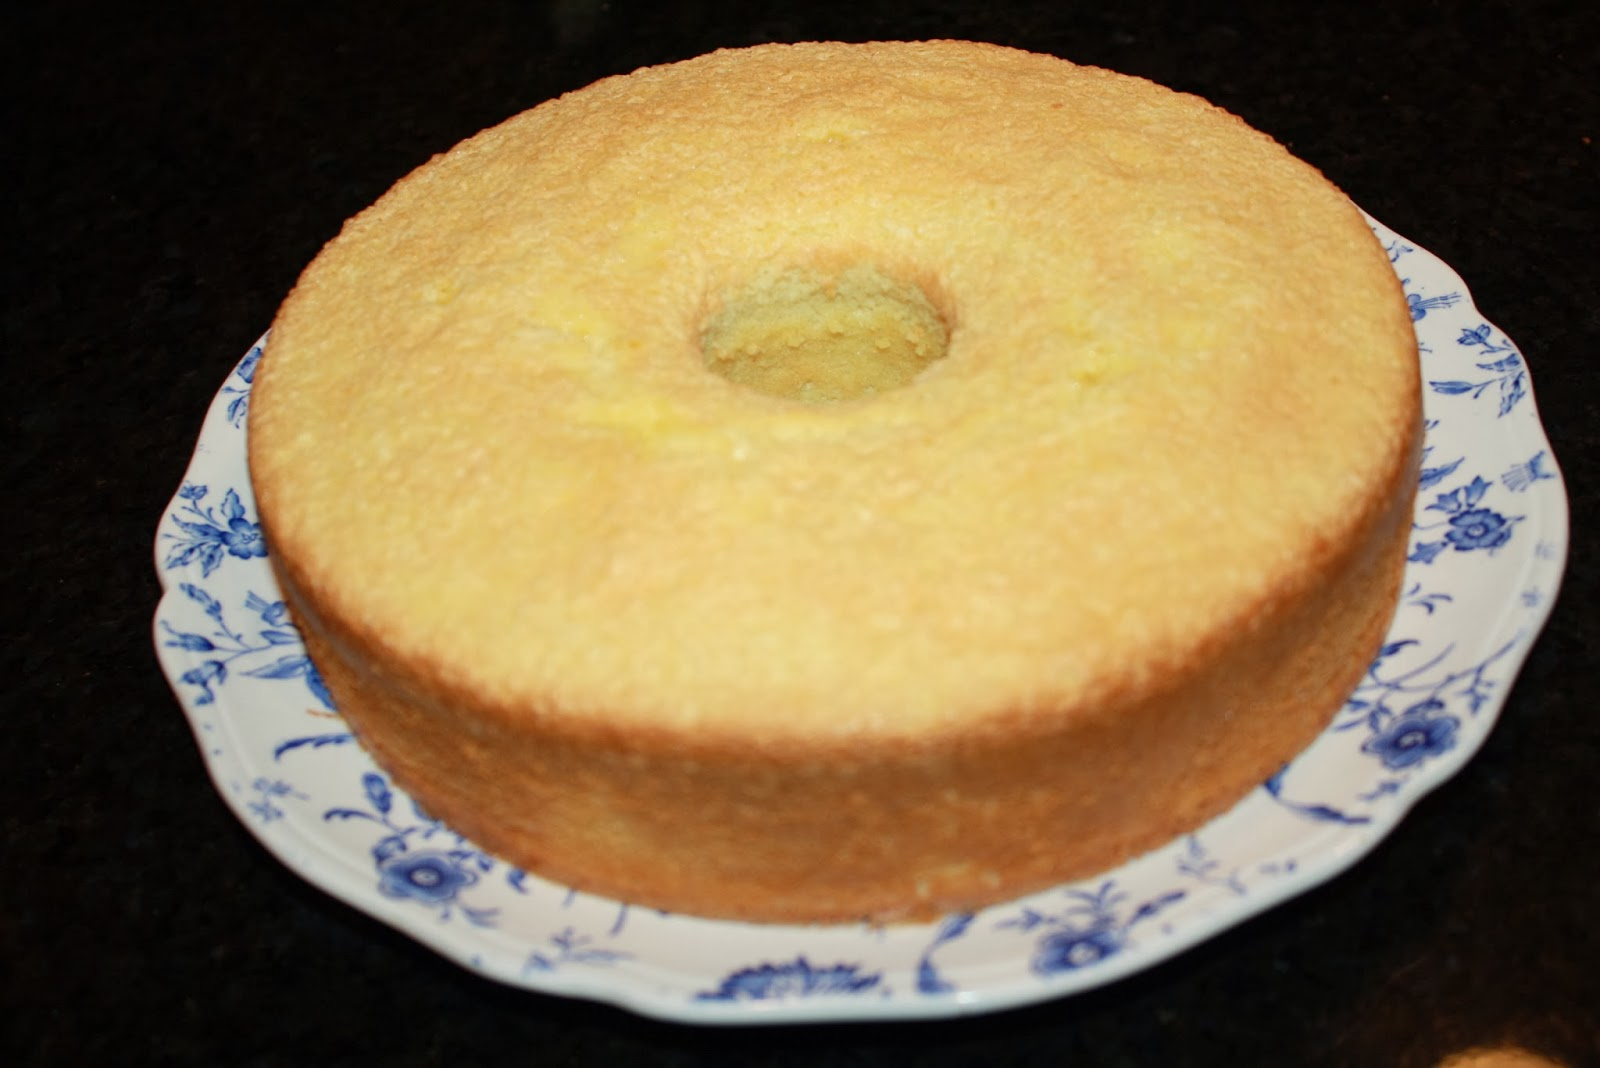 Light Lemon Sponge Cake Recipes: Madie's Kitchen